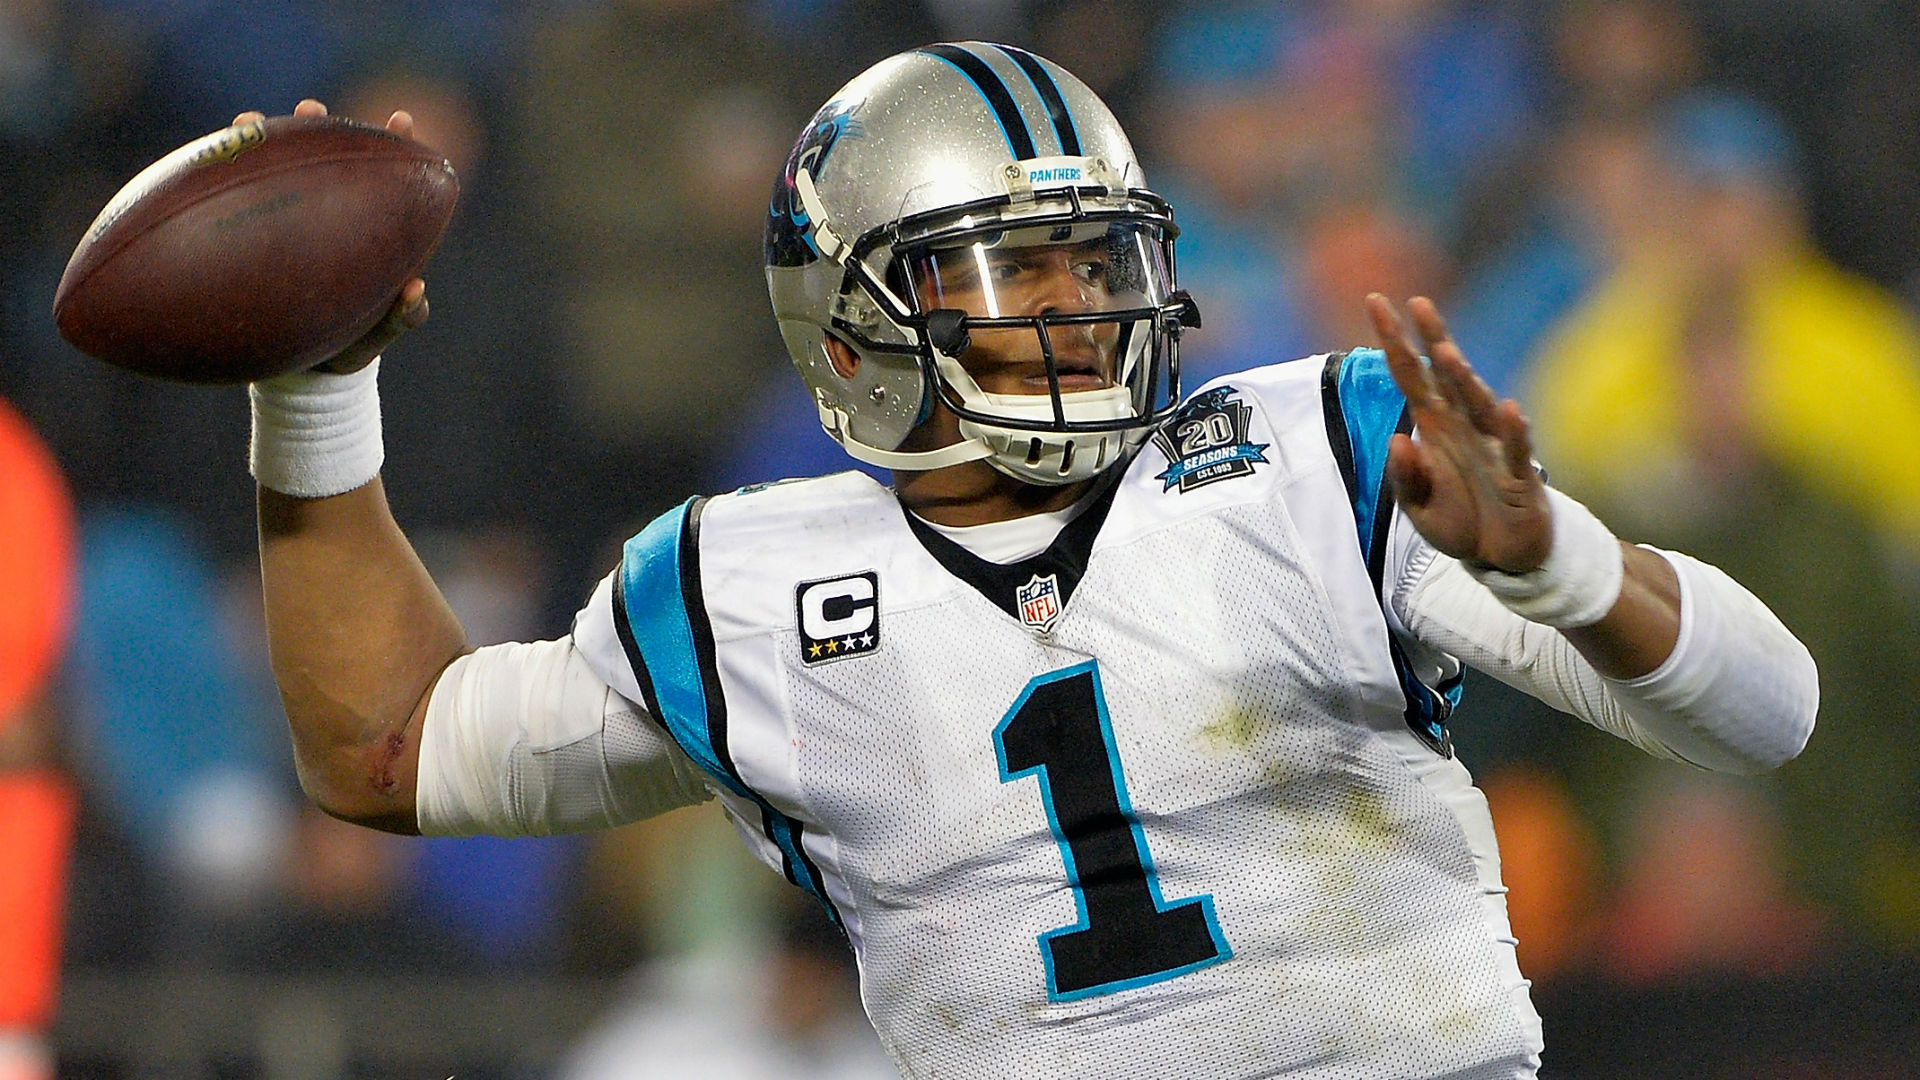 Panthers NFL Cam Newton